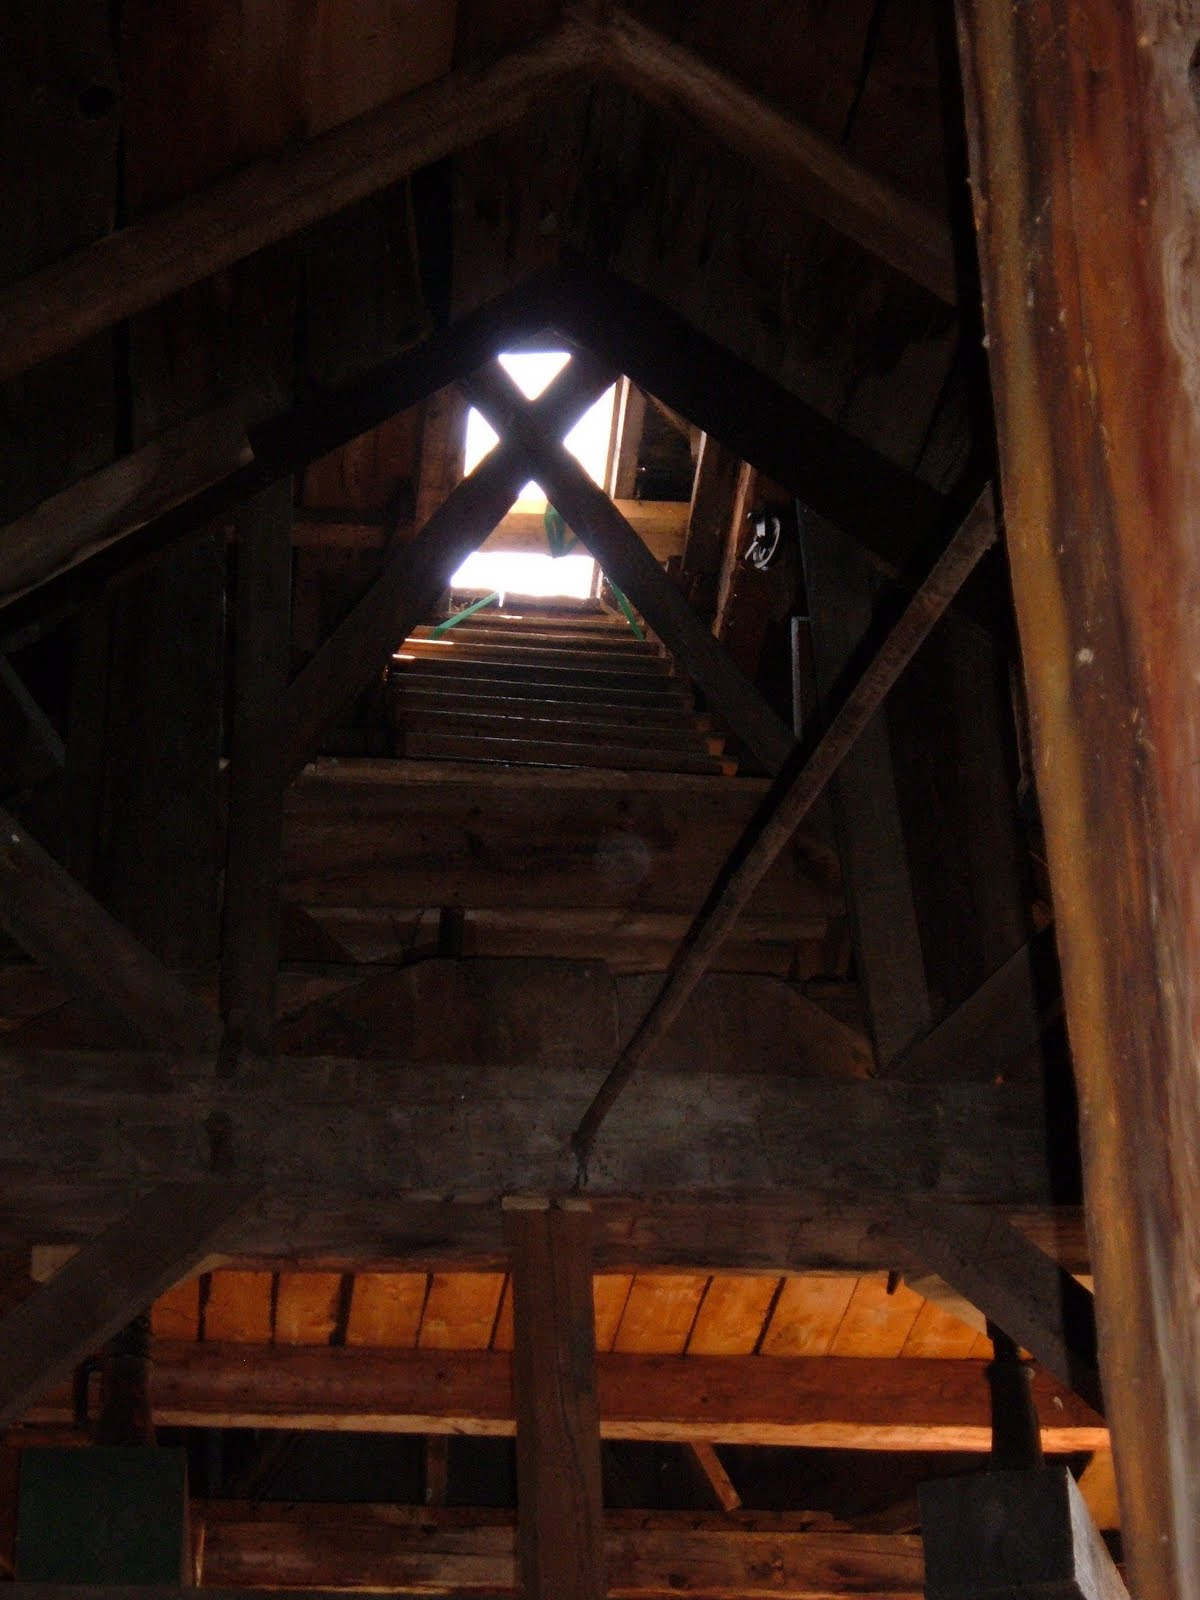 The view from the attic up to the bell deck.